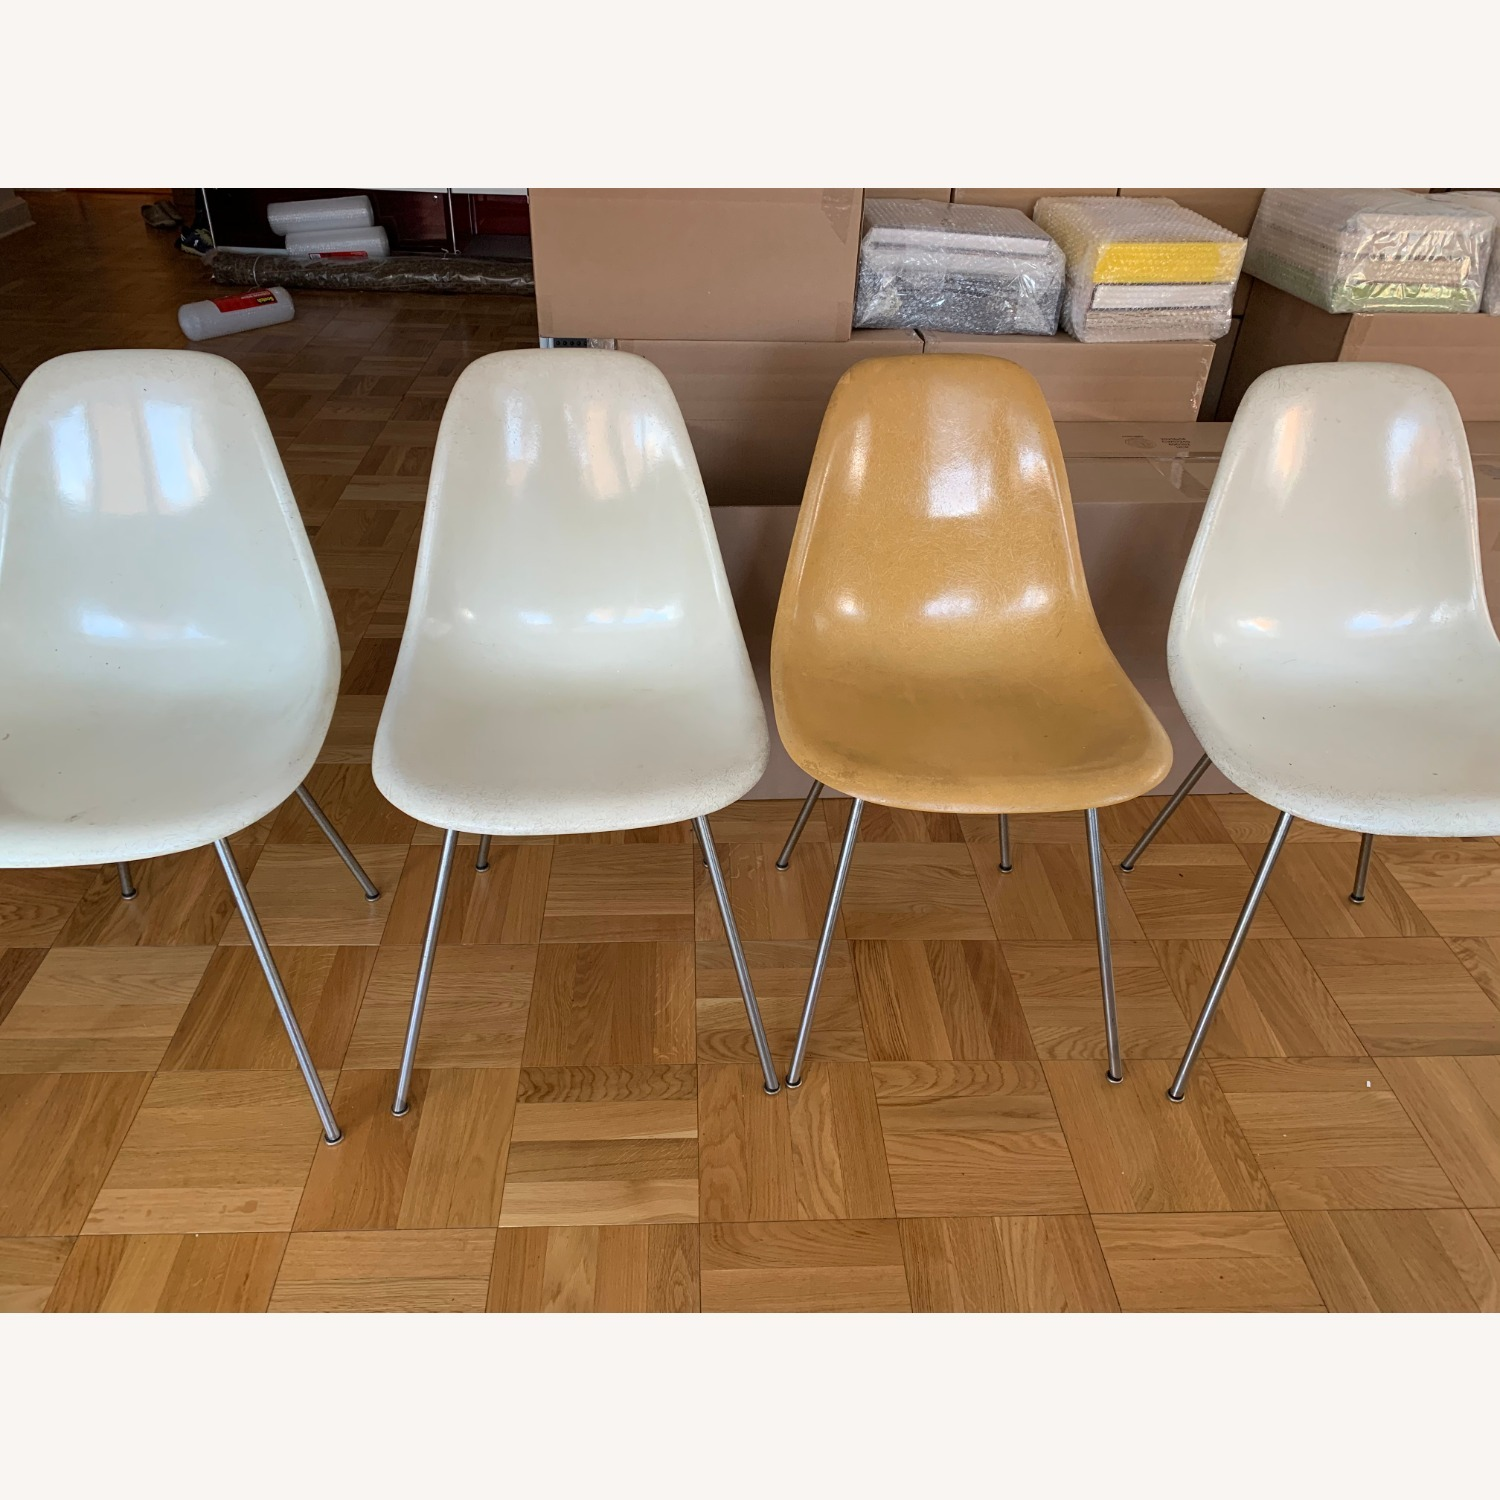 Set of 4 Case Study Chairs (Eames schoolchairs) - image-4